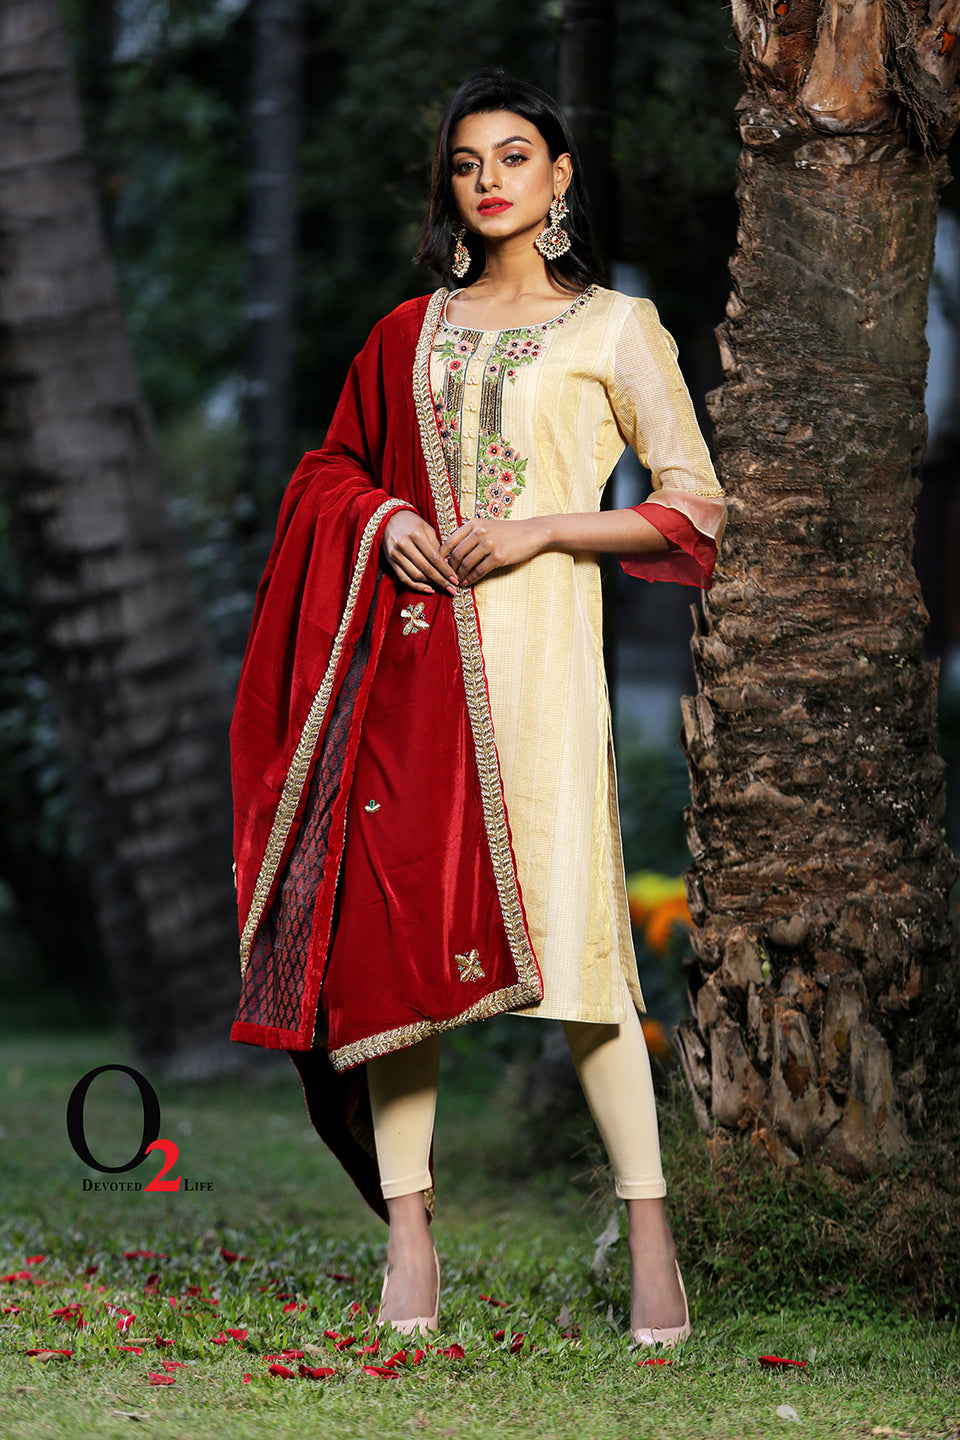 Golden Organza Zardosi Long Kameez